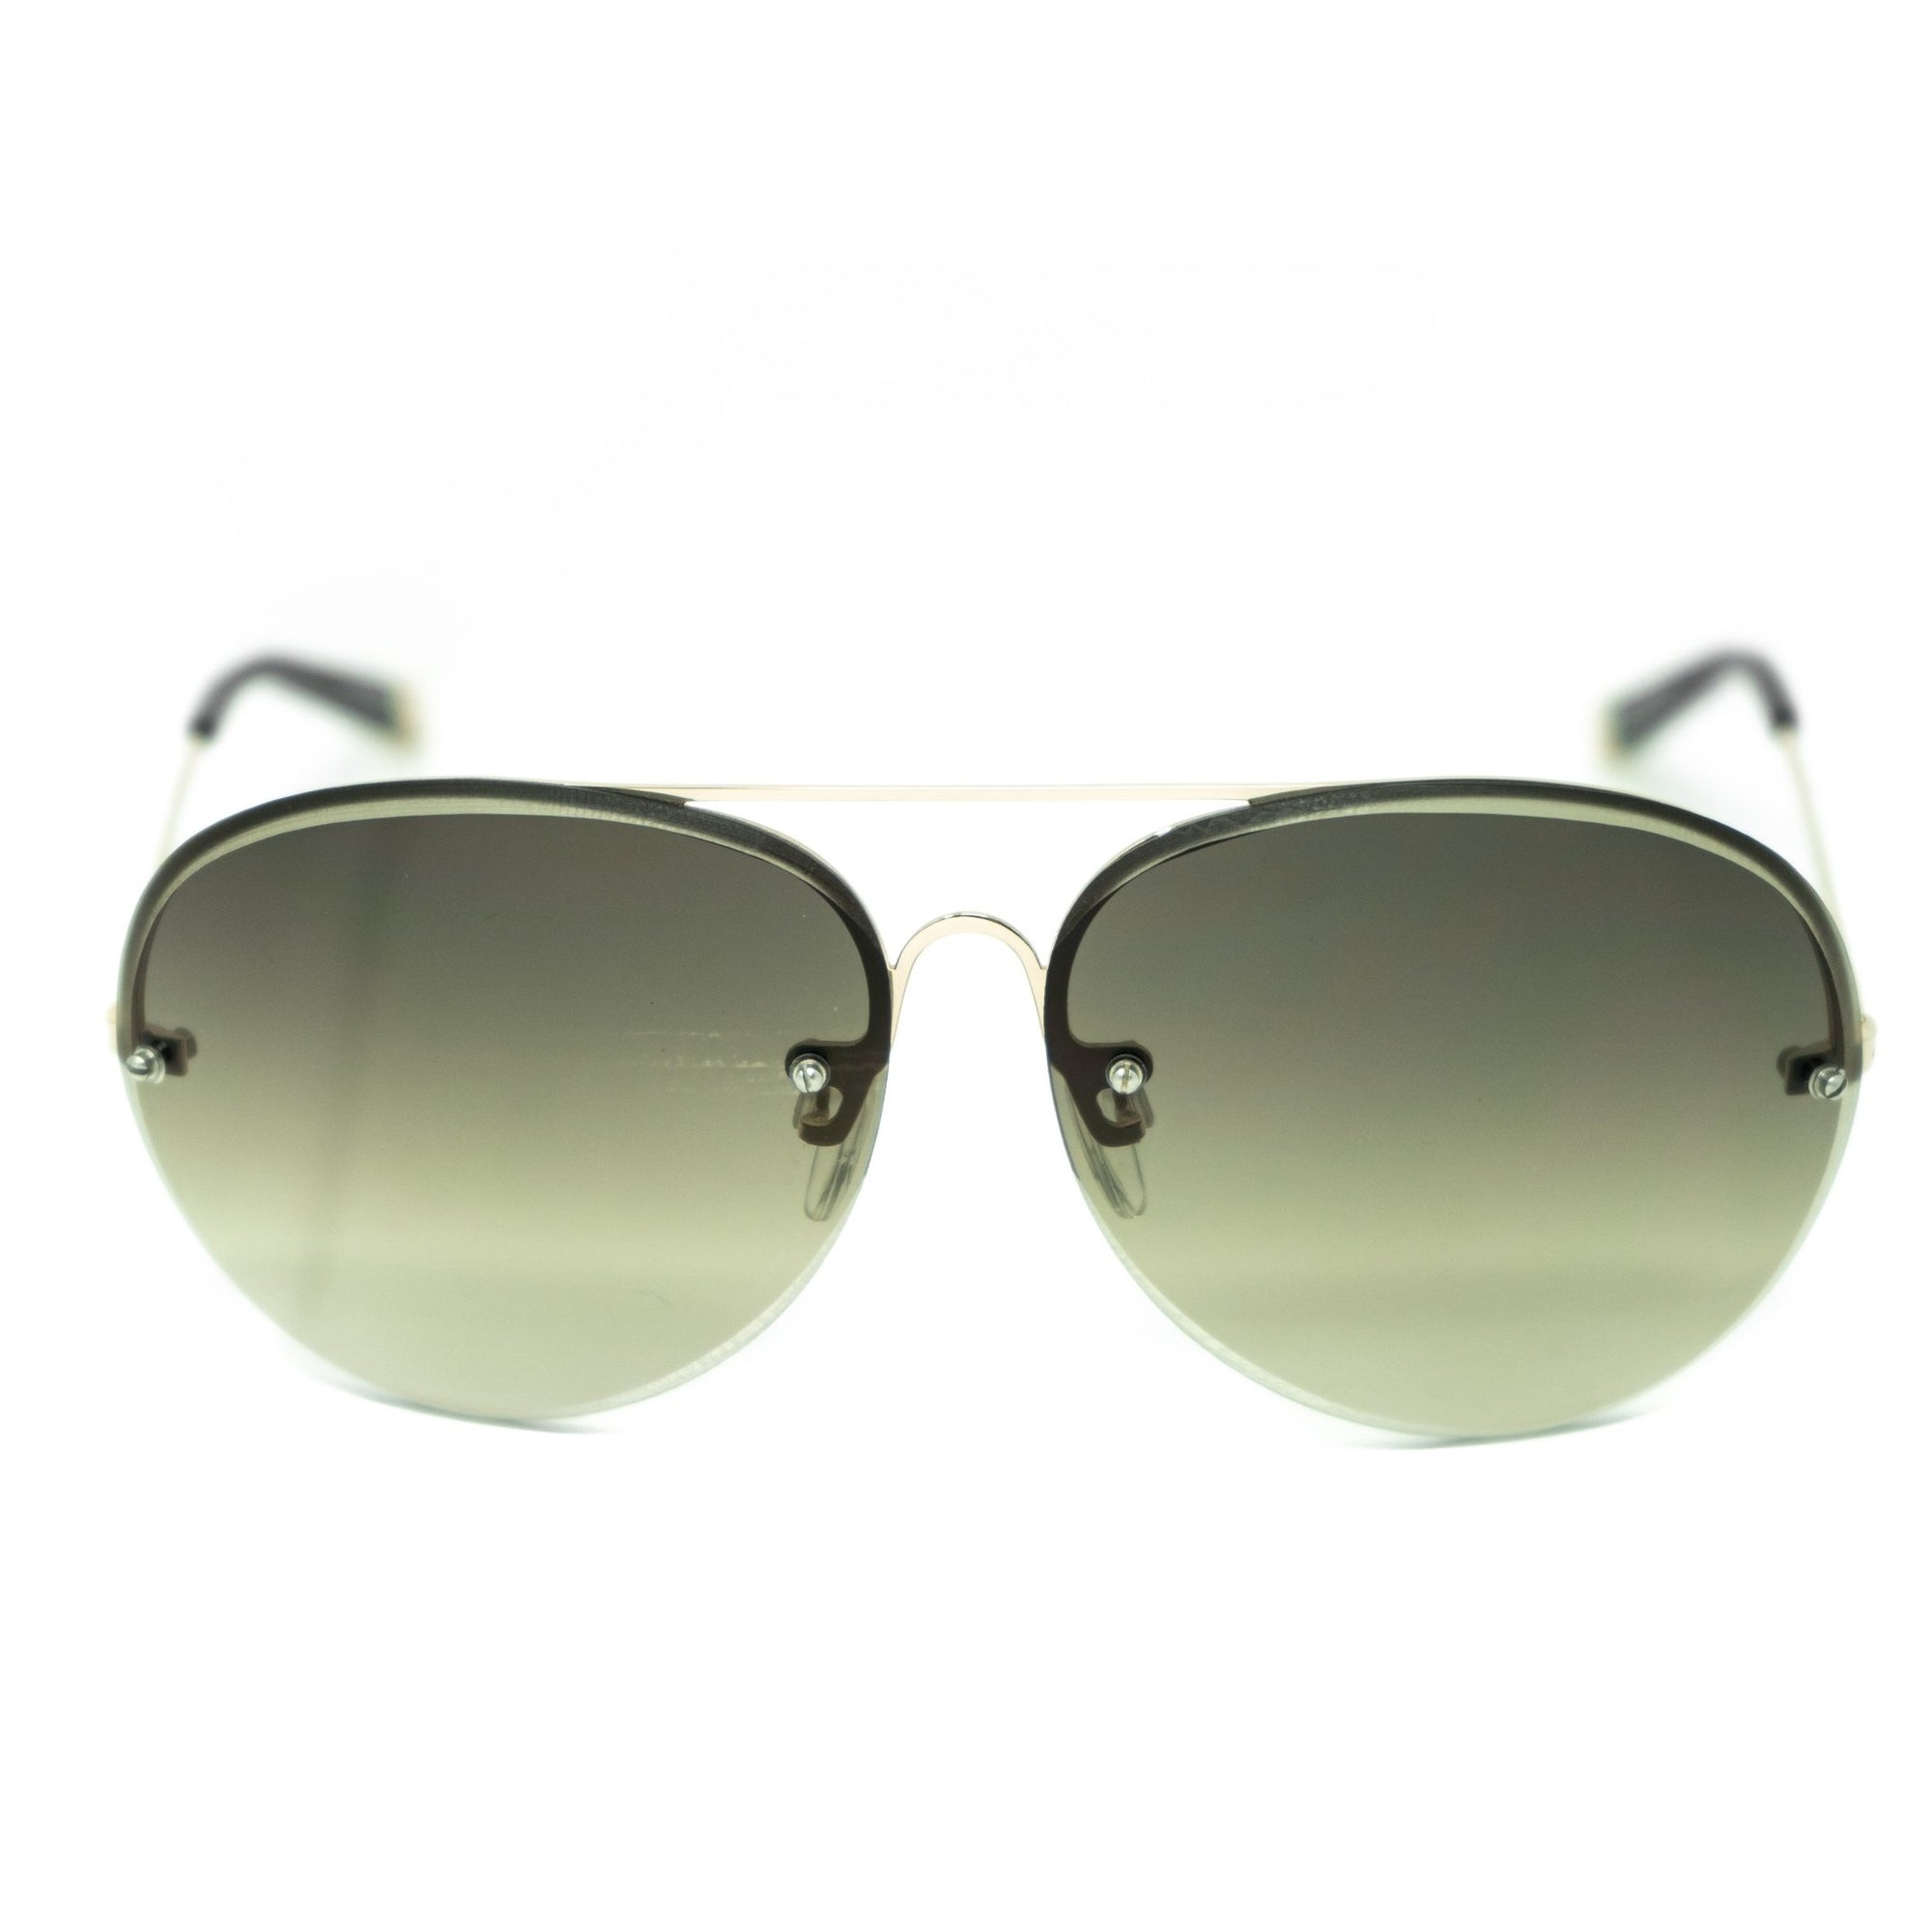 Antonio Berardi Men Sunglasses Gold and Green Graduated Lenses - AB1C2SUN - Watches & Crystals